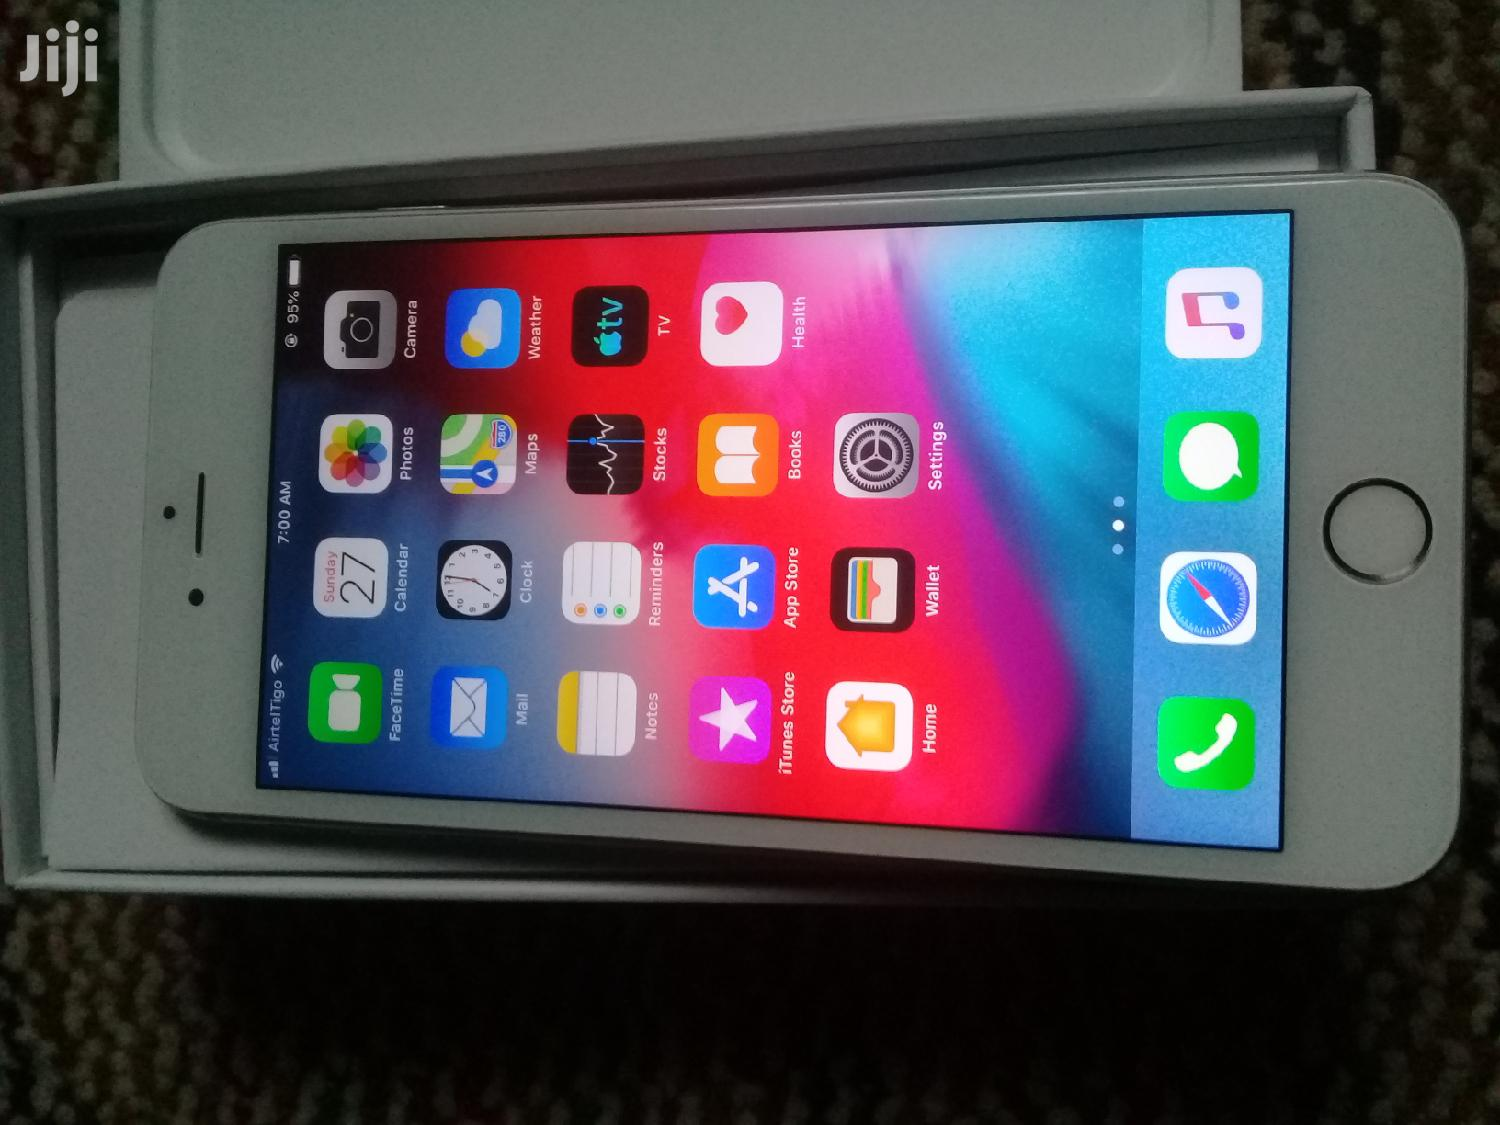 New Apple iPhone 6 Plus 64 GB | Mobile Phones for sale in Tema Metropolitan, Greater Accra, Ghana